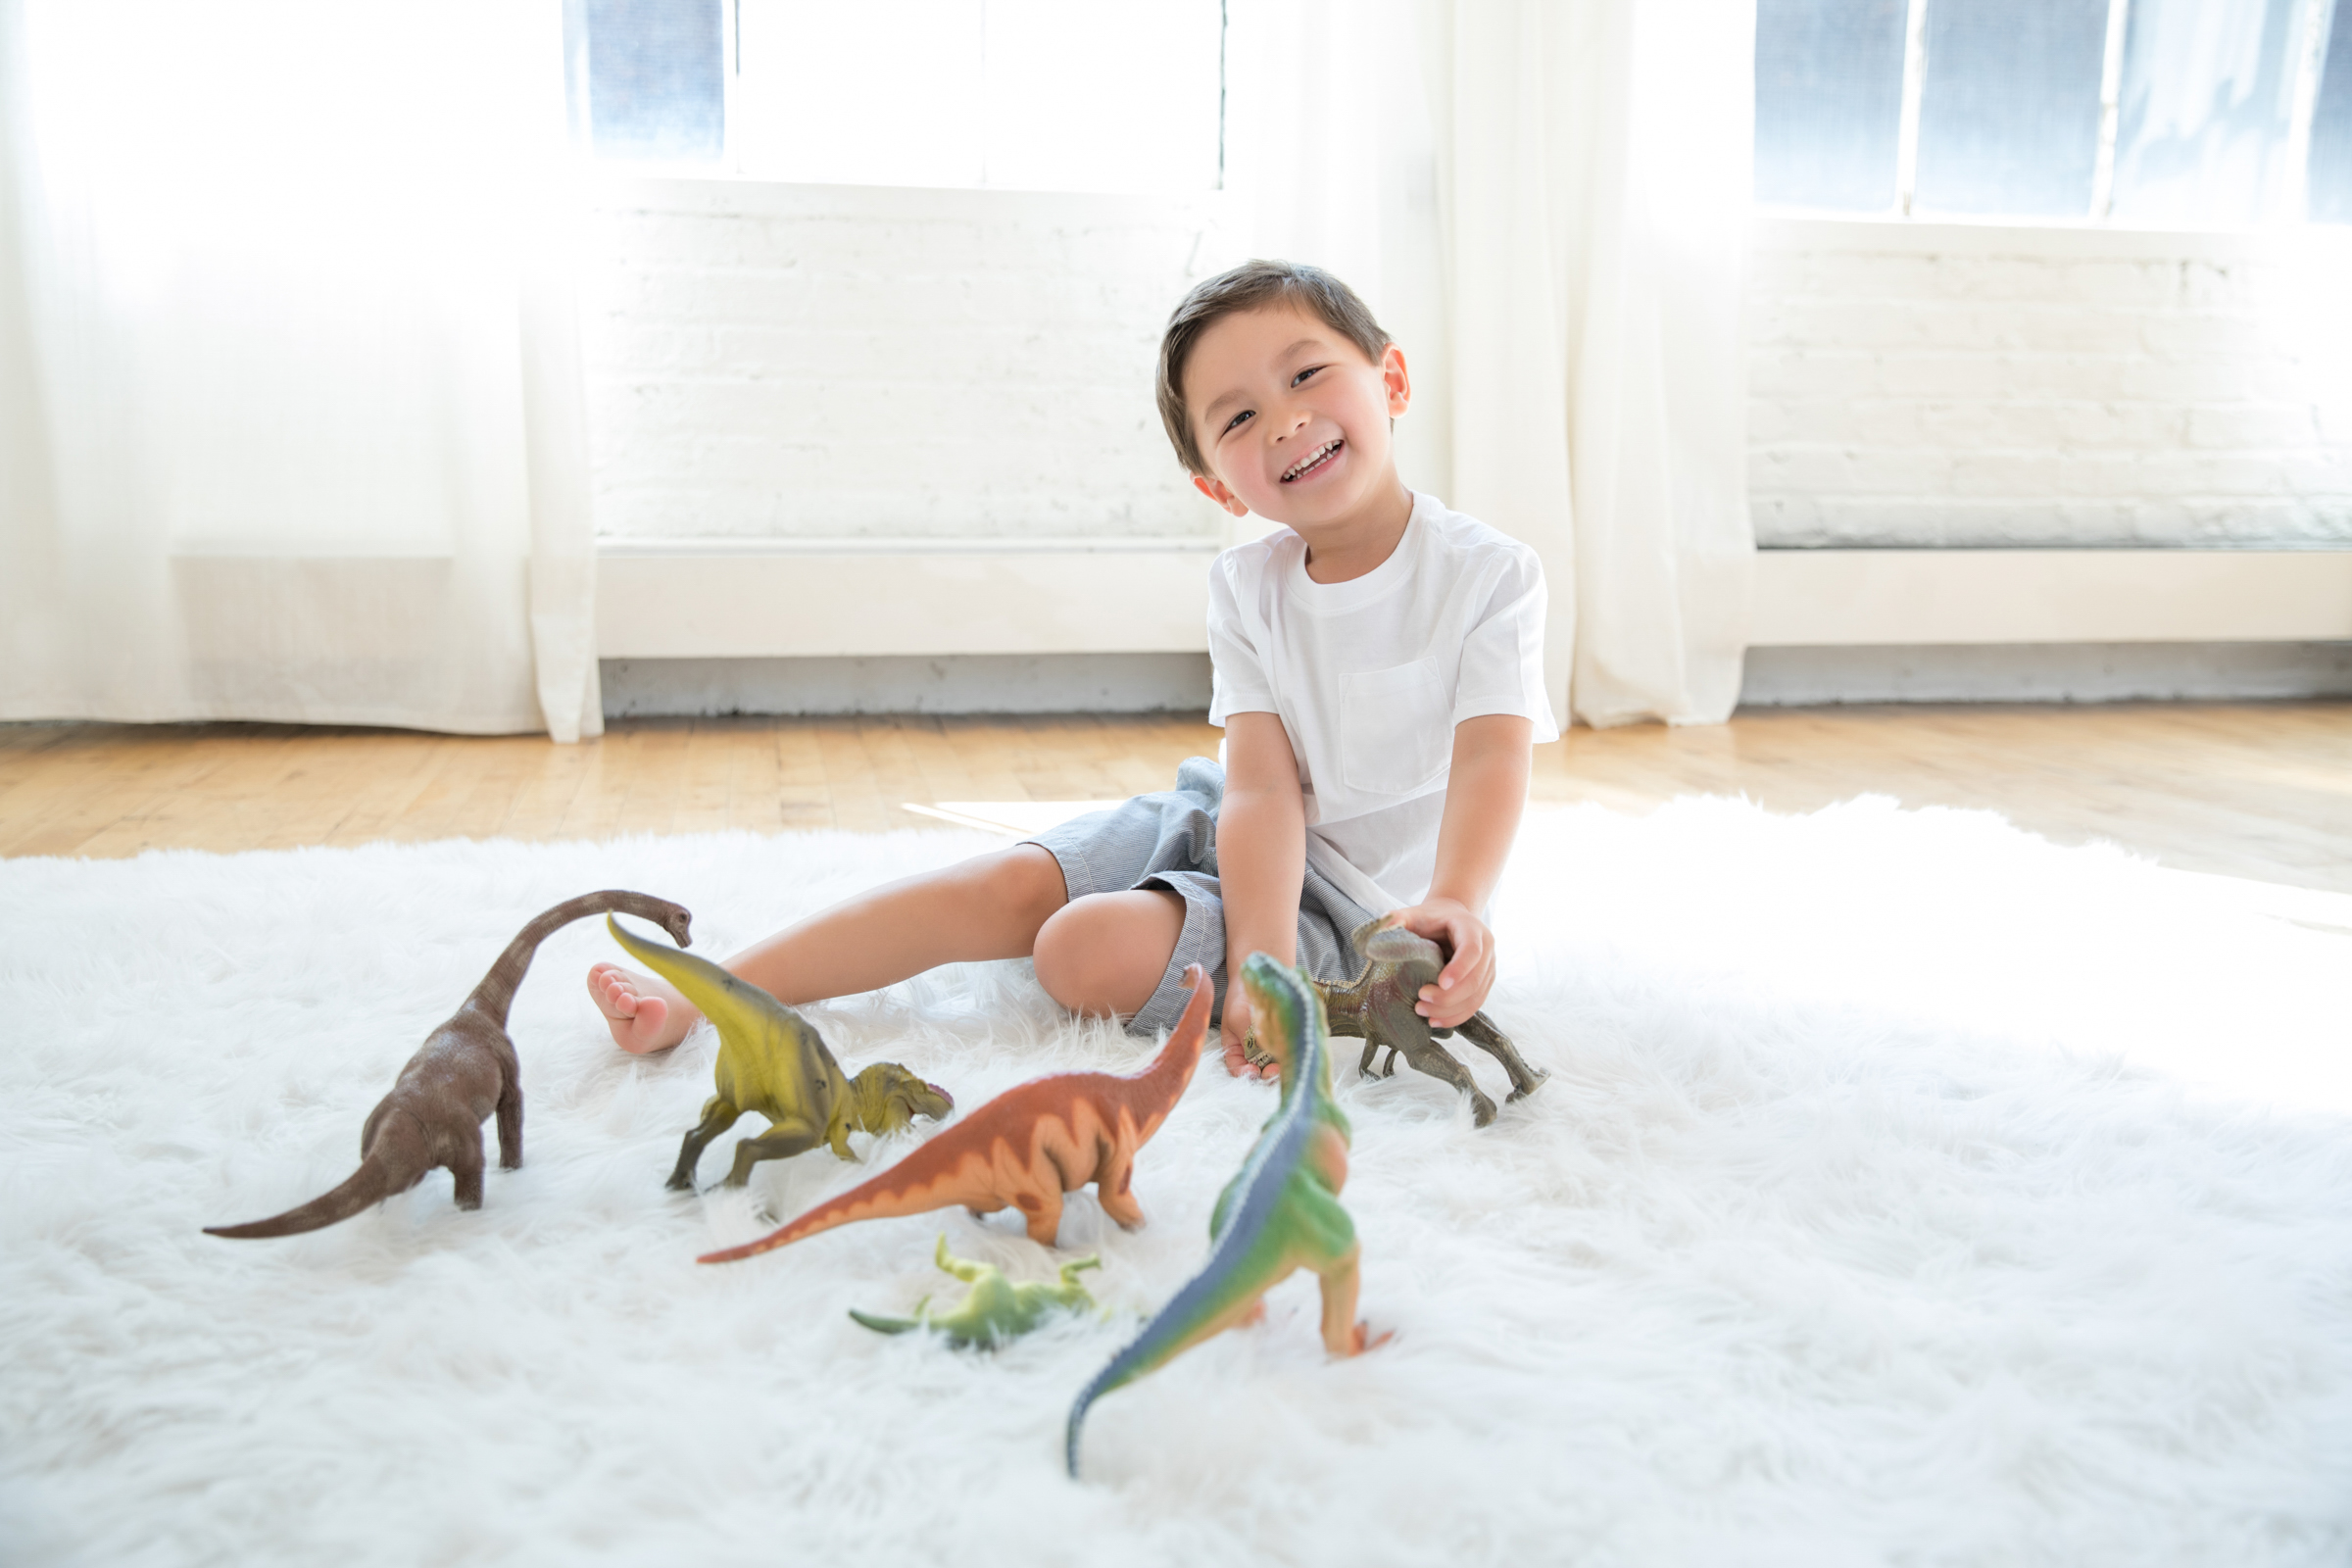 Happy_Boy_Playing_With_Dinosaurs.jpg